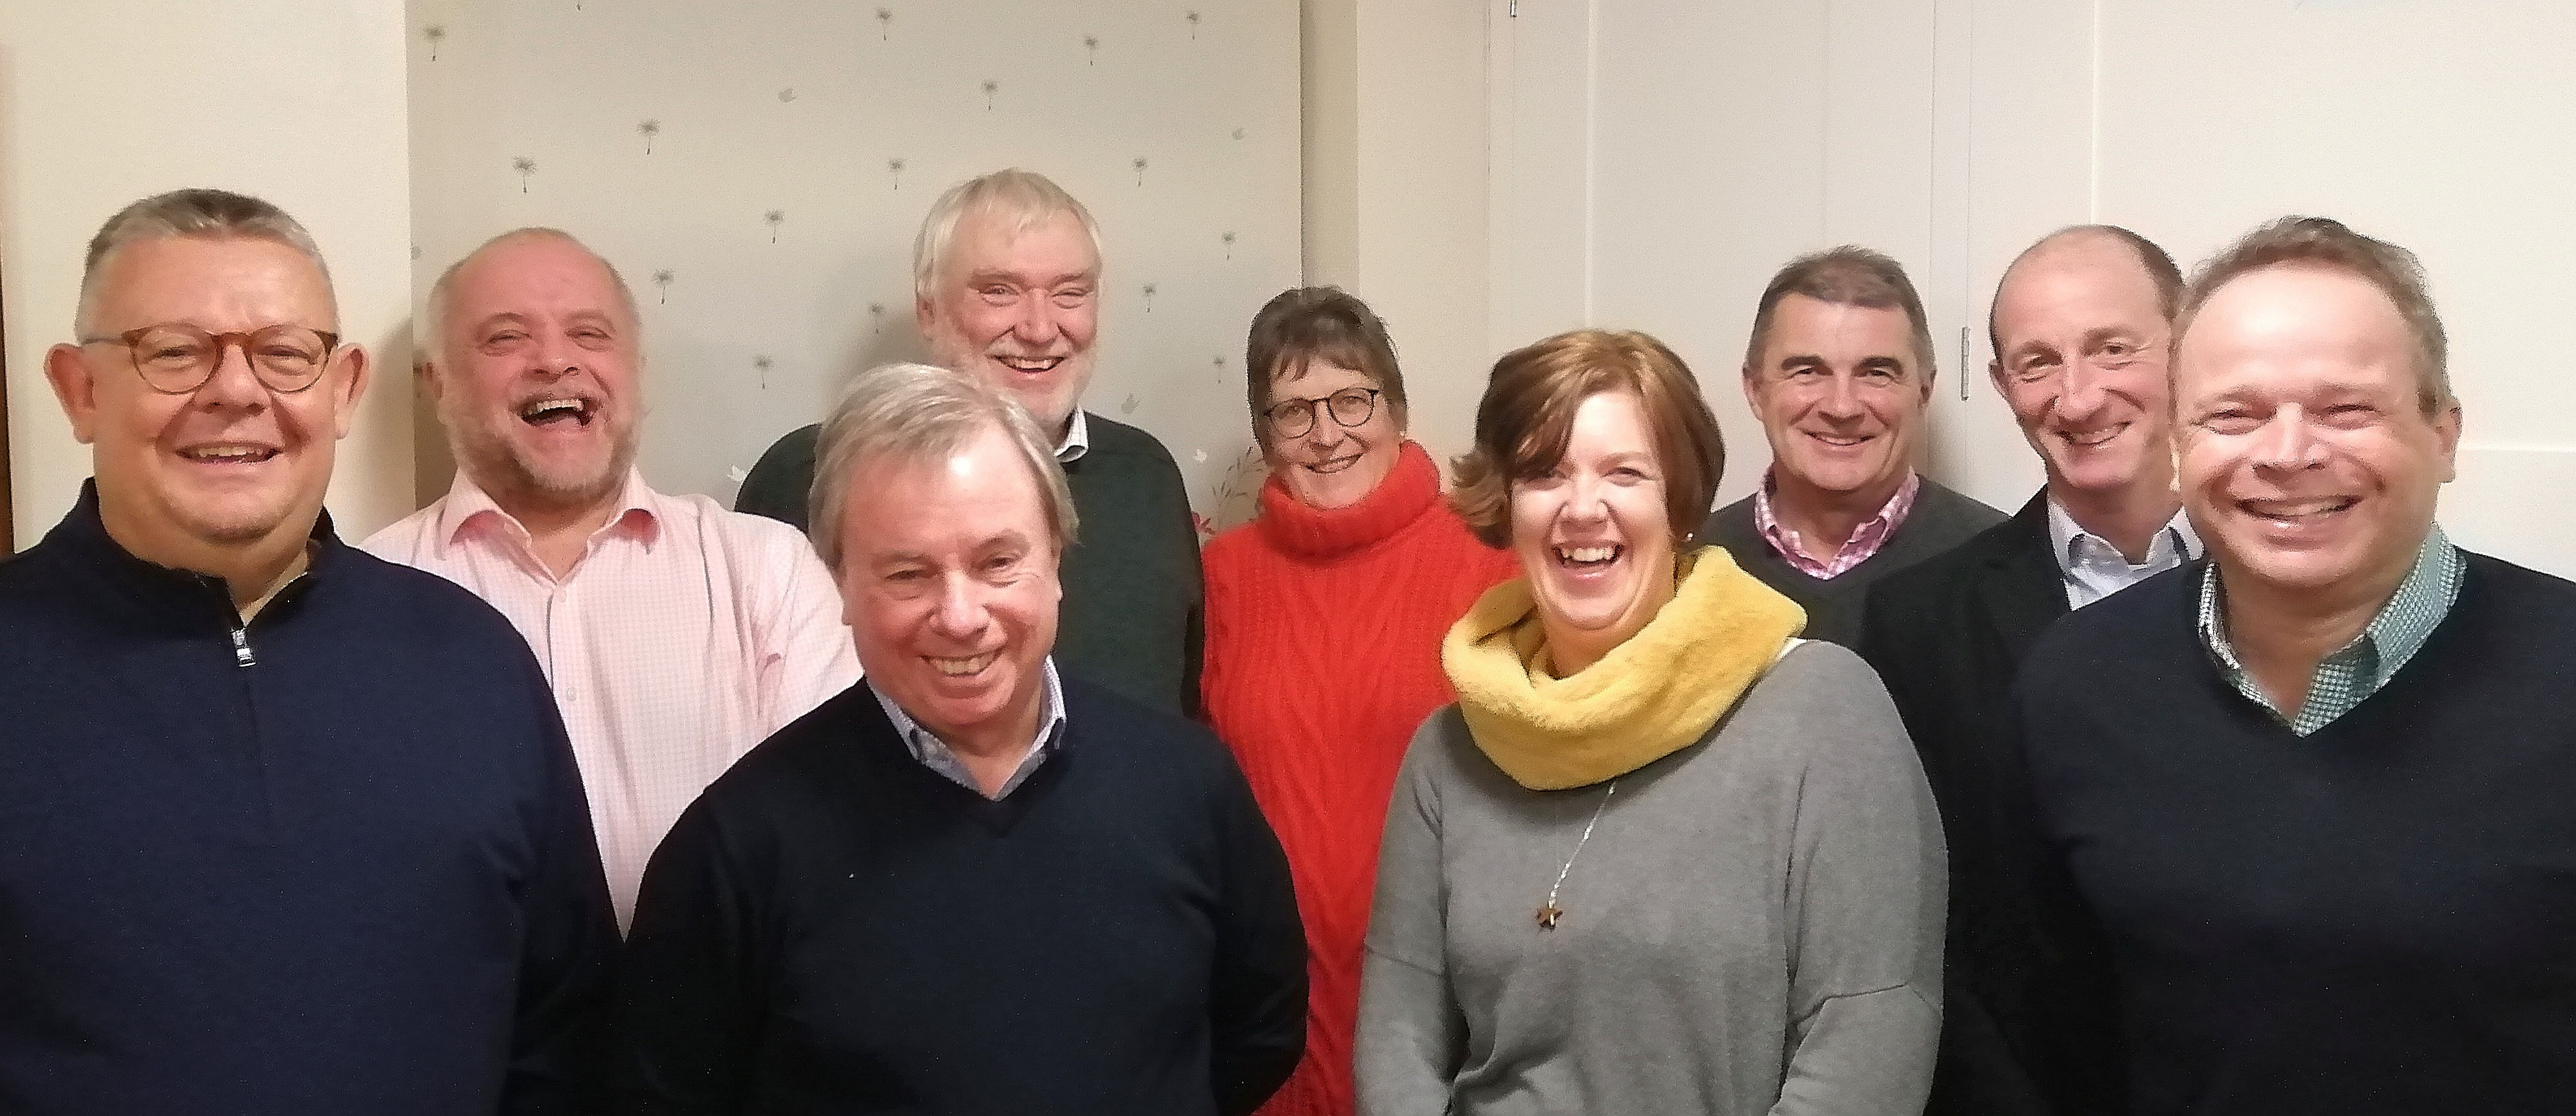 Photo of the whole council at the December 2019 meeting